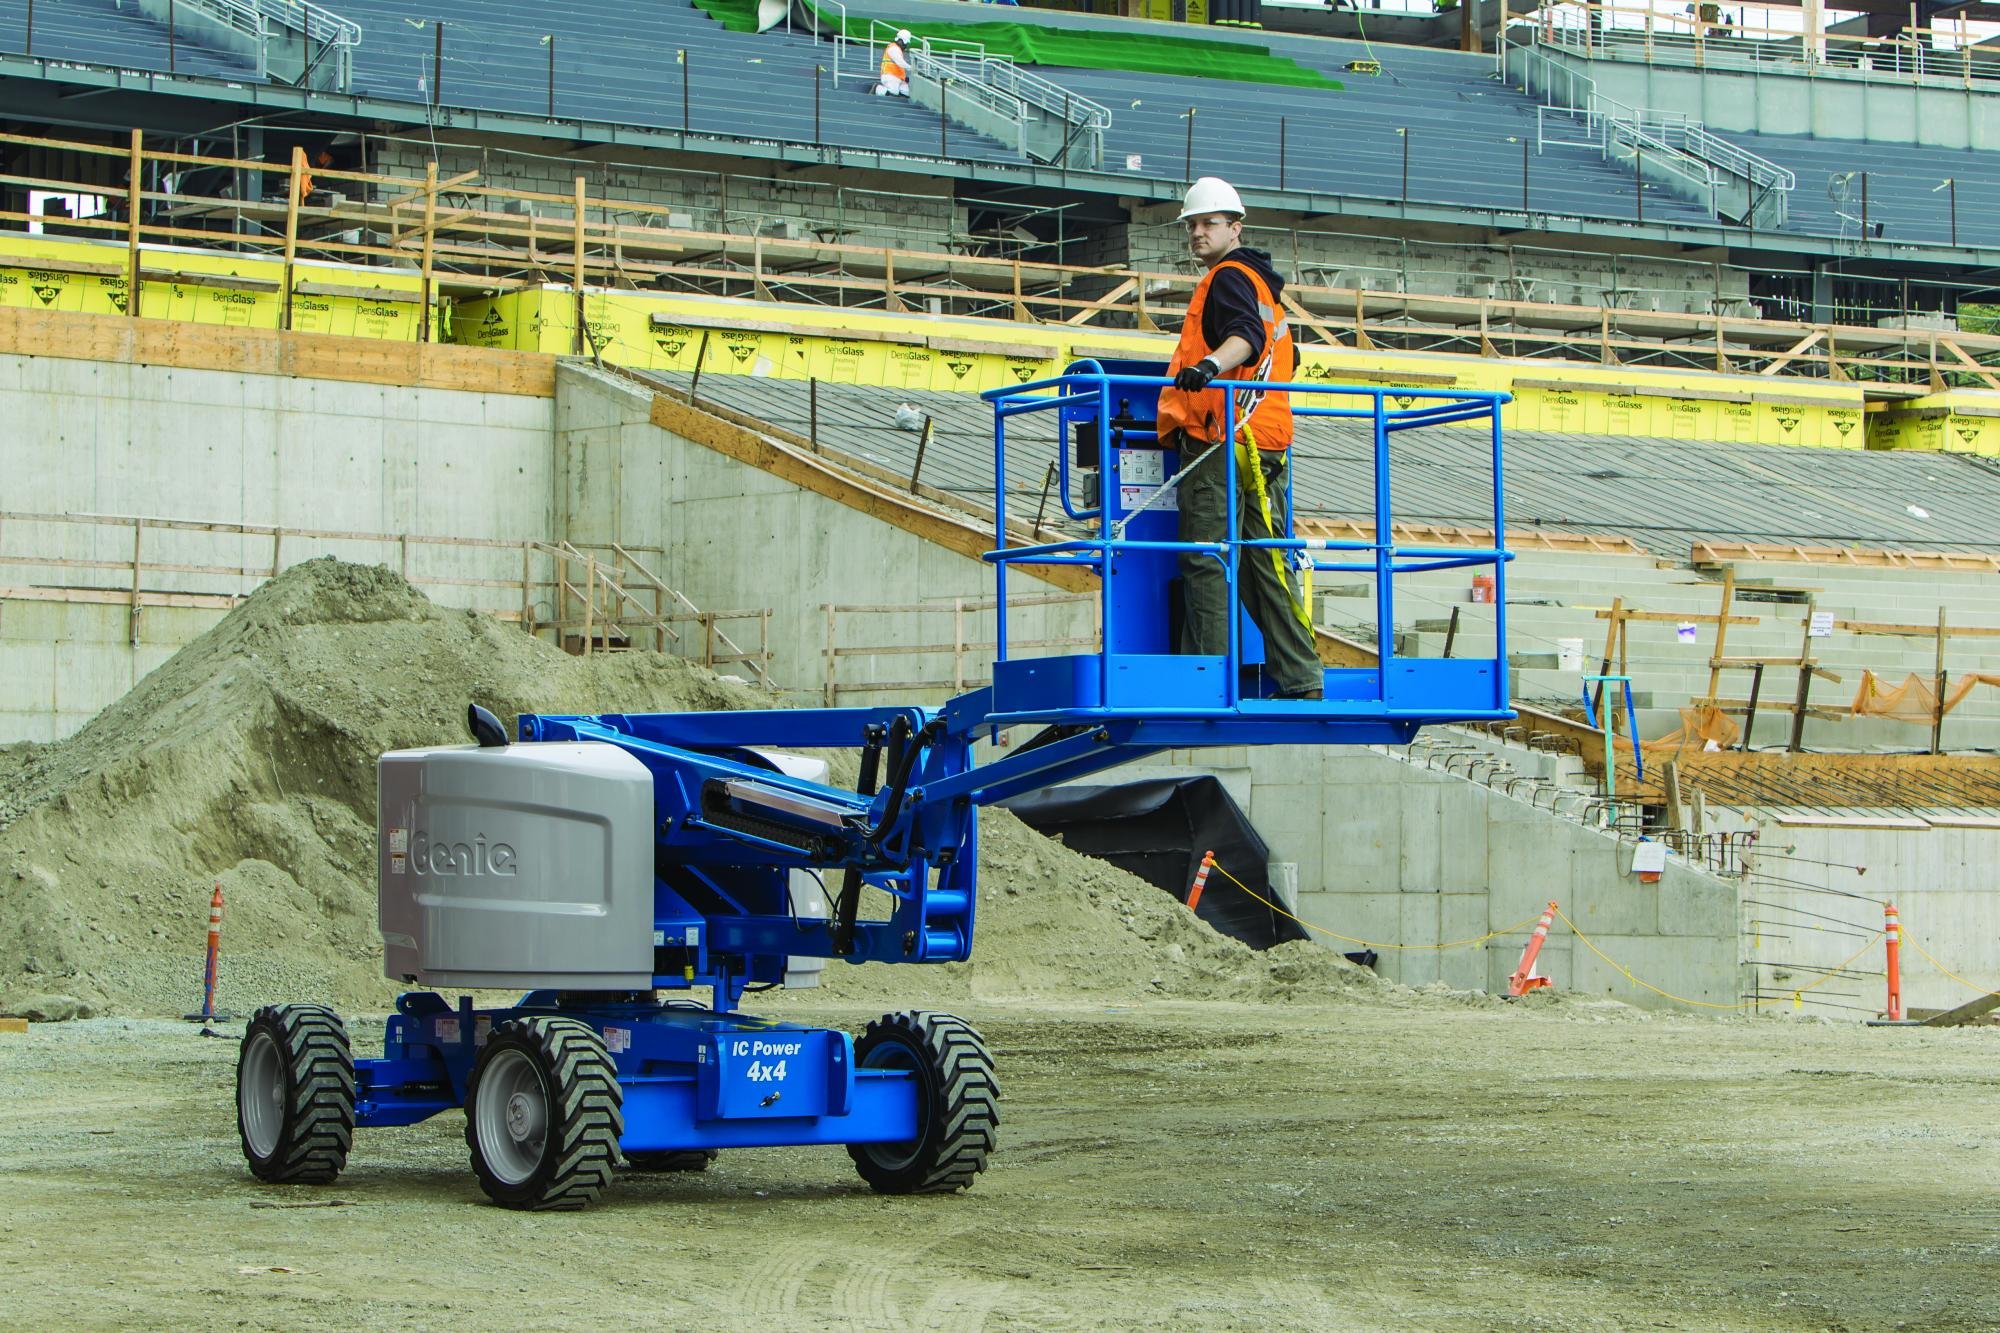 Genie® Z45/25JRT (JIB & Rough Terrain) Articulated Boom Lift